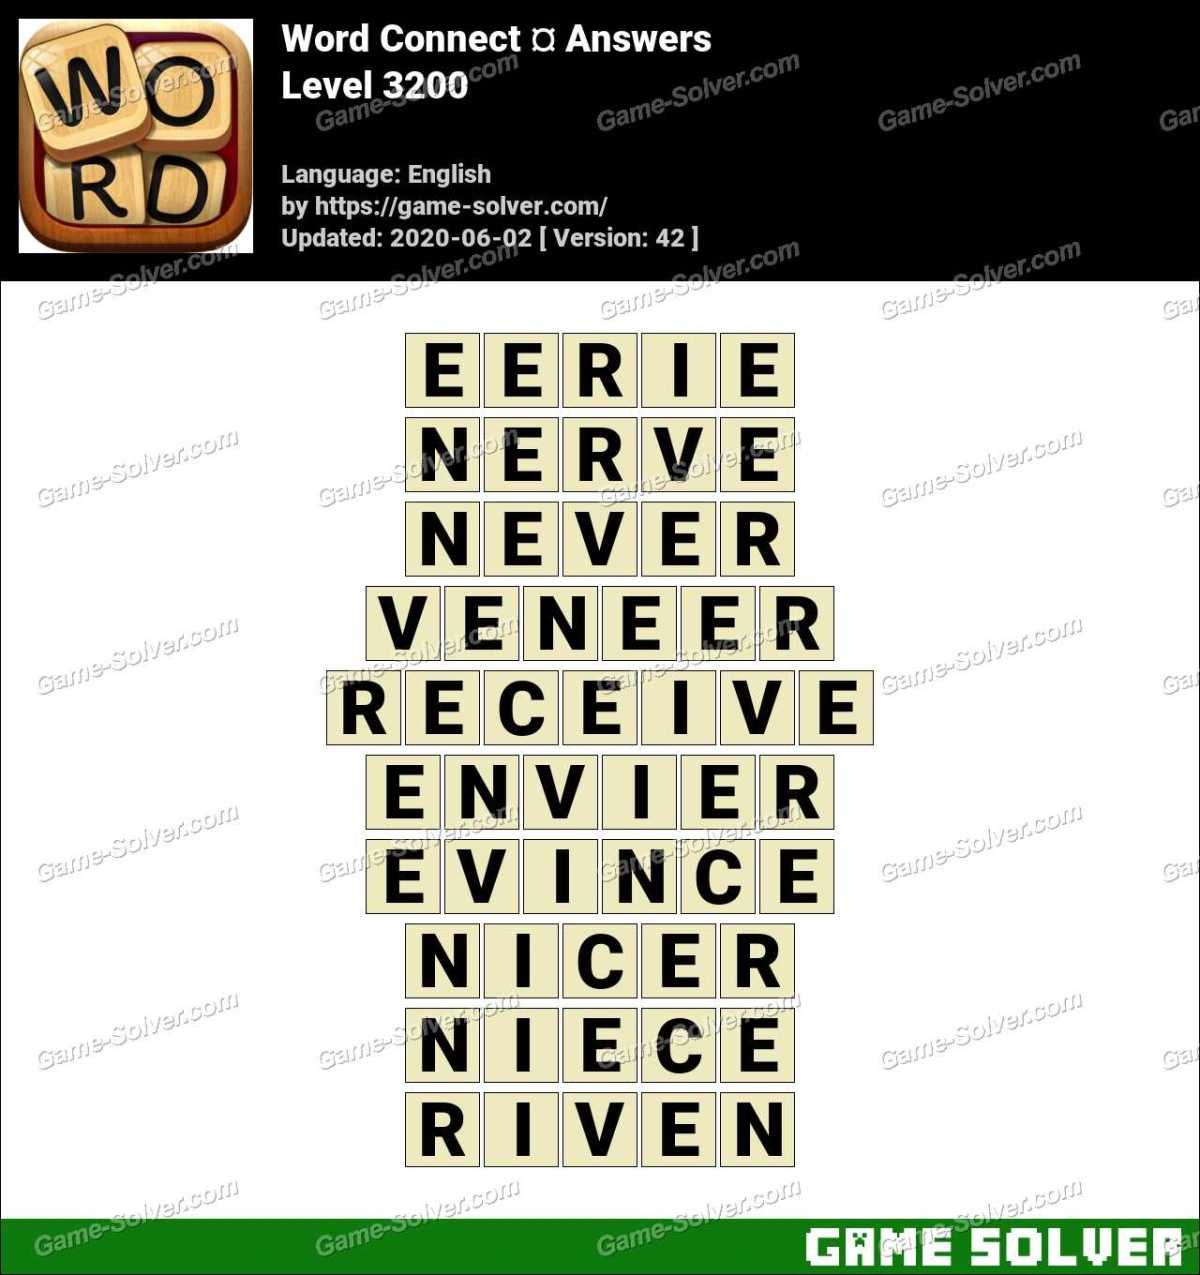 Word Connect Level 3200 Answers